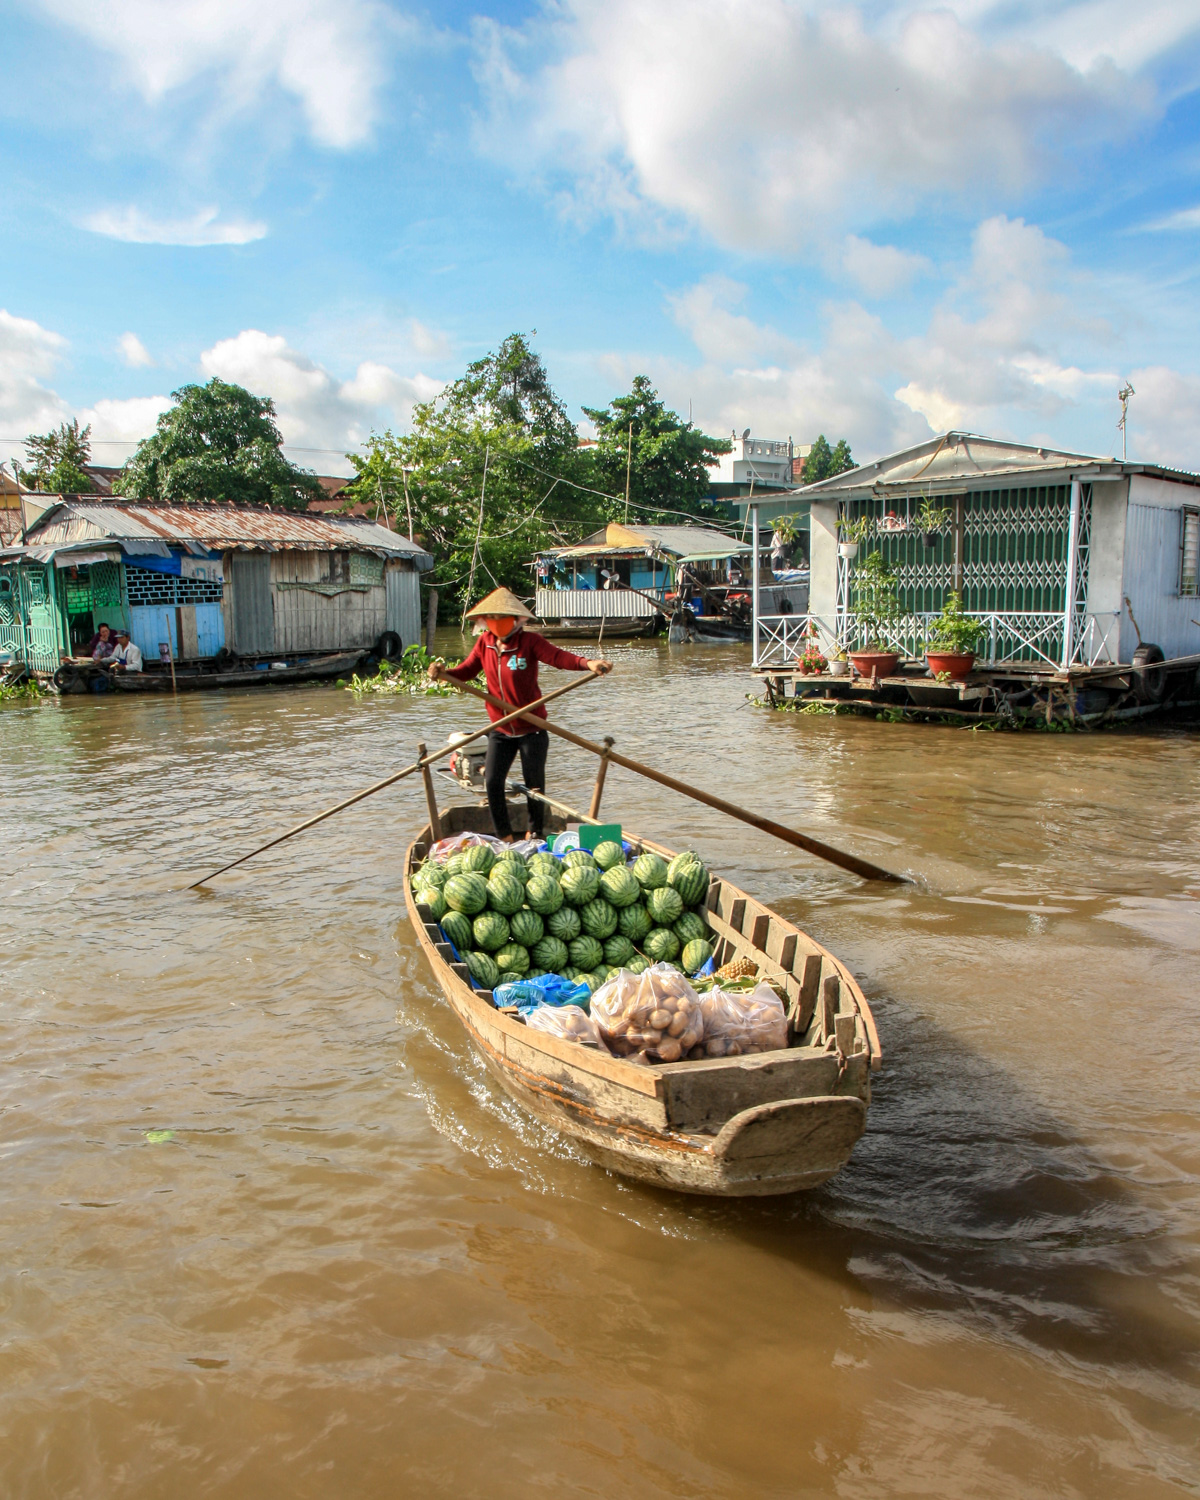 The floating market on the Mekong Delta